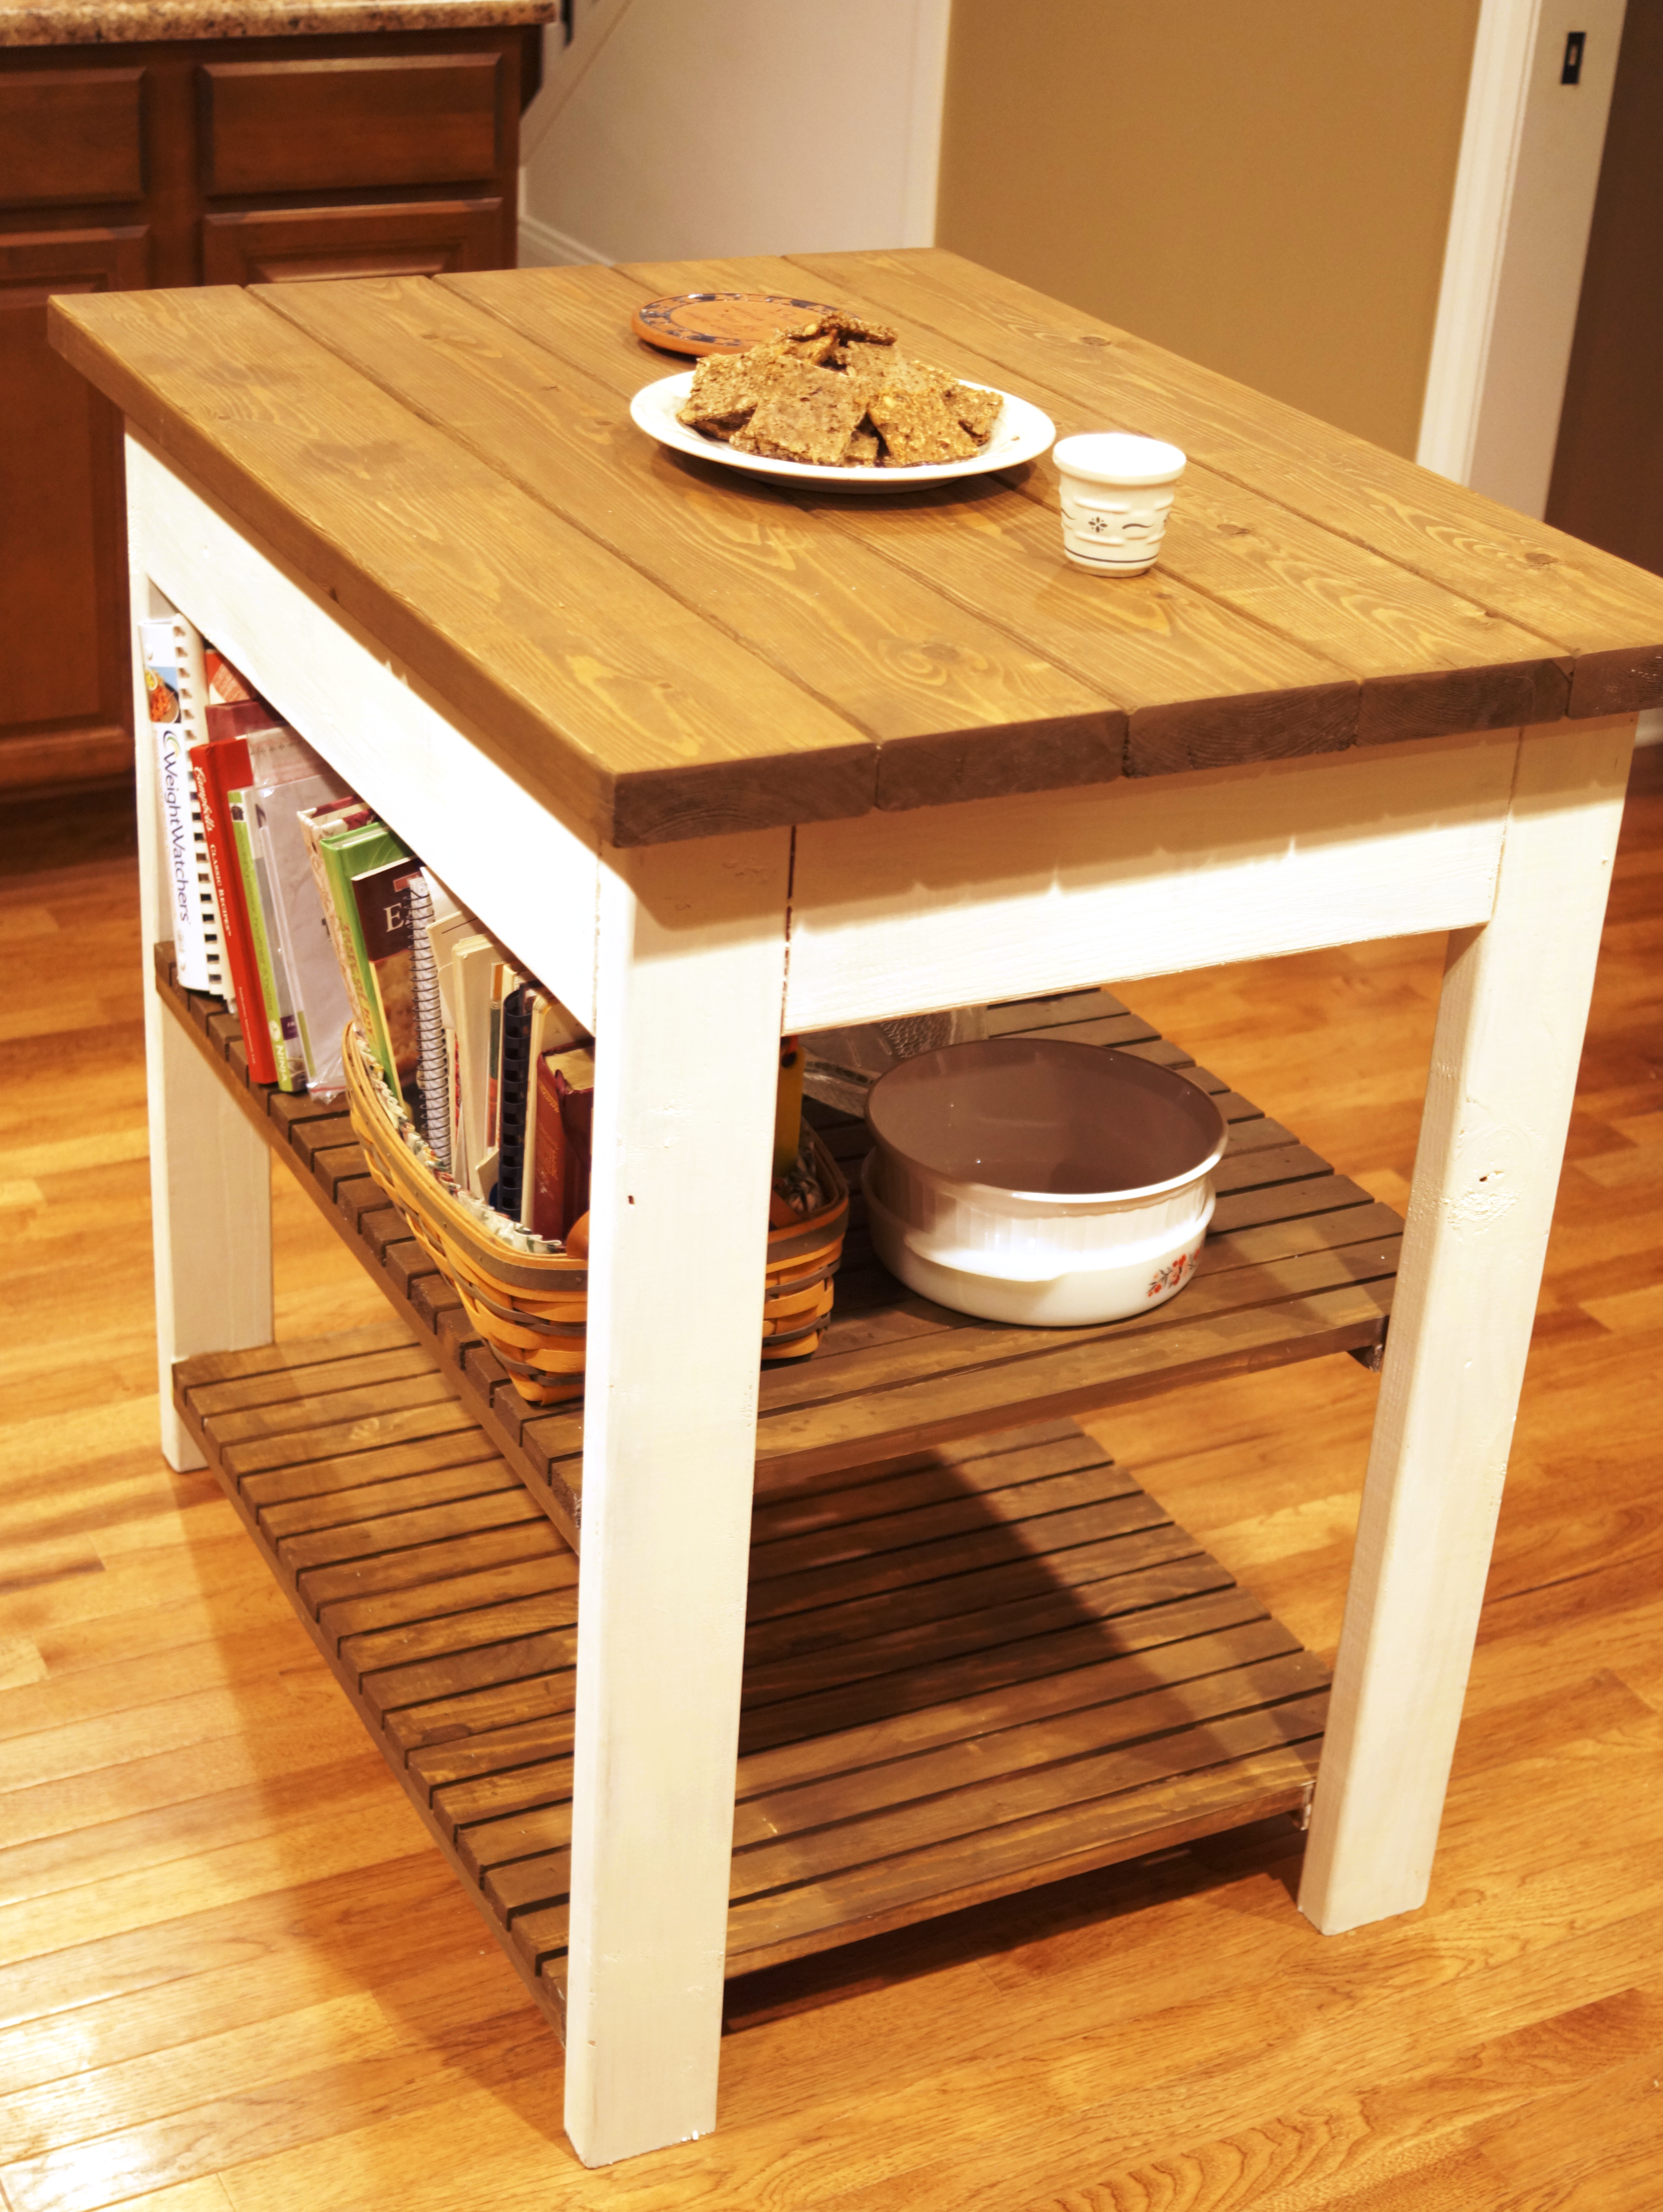 My Sister Needed A Kitchen Island, Giving Me A Great Christmas Gift Idea,  And An Excuse To Tackle Another Ana White Woodworking Plan.